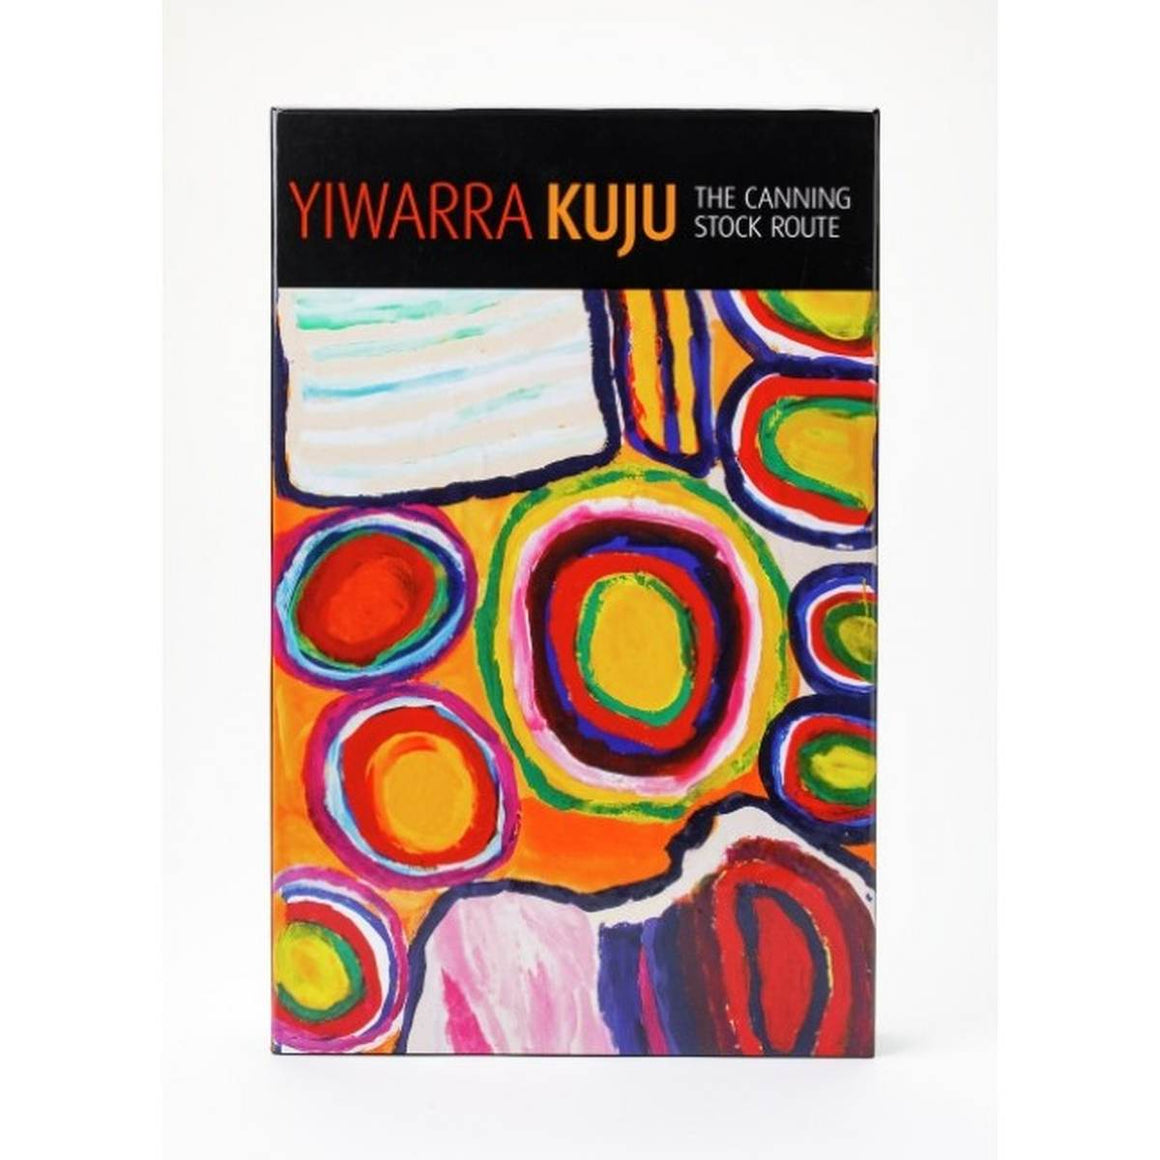 Puzzle | Yiwarra Kuju: The Canning Stock Route  | 1000 piece